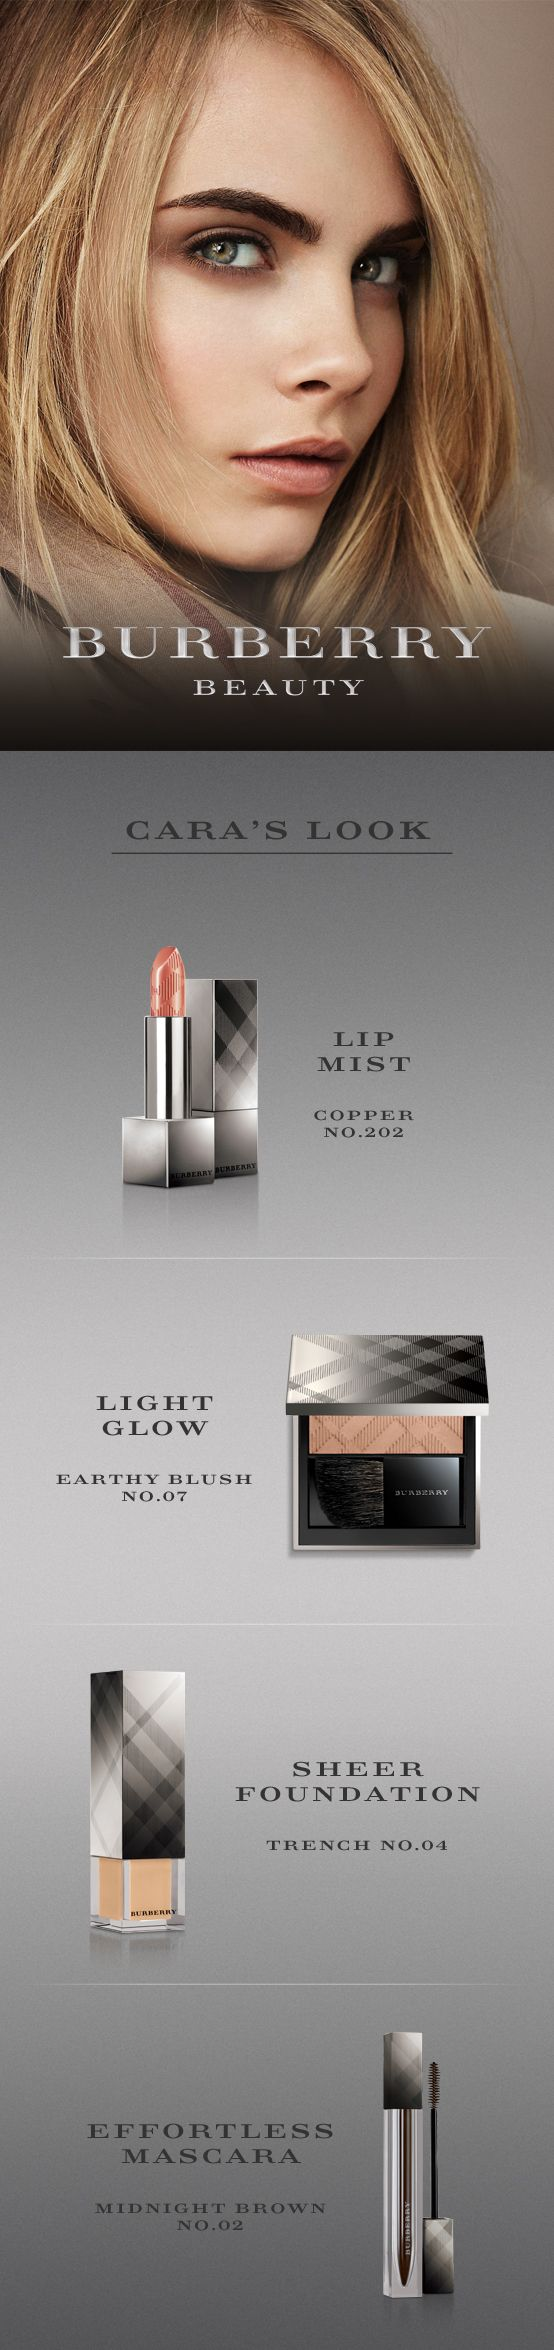 Burberry Beauty - Cara's LookMakeup